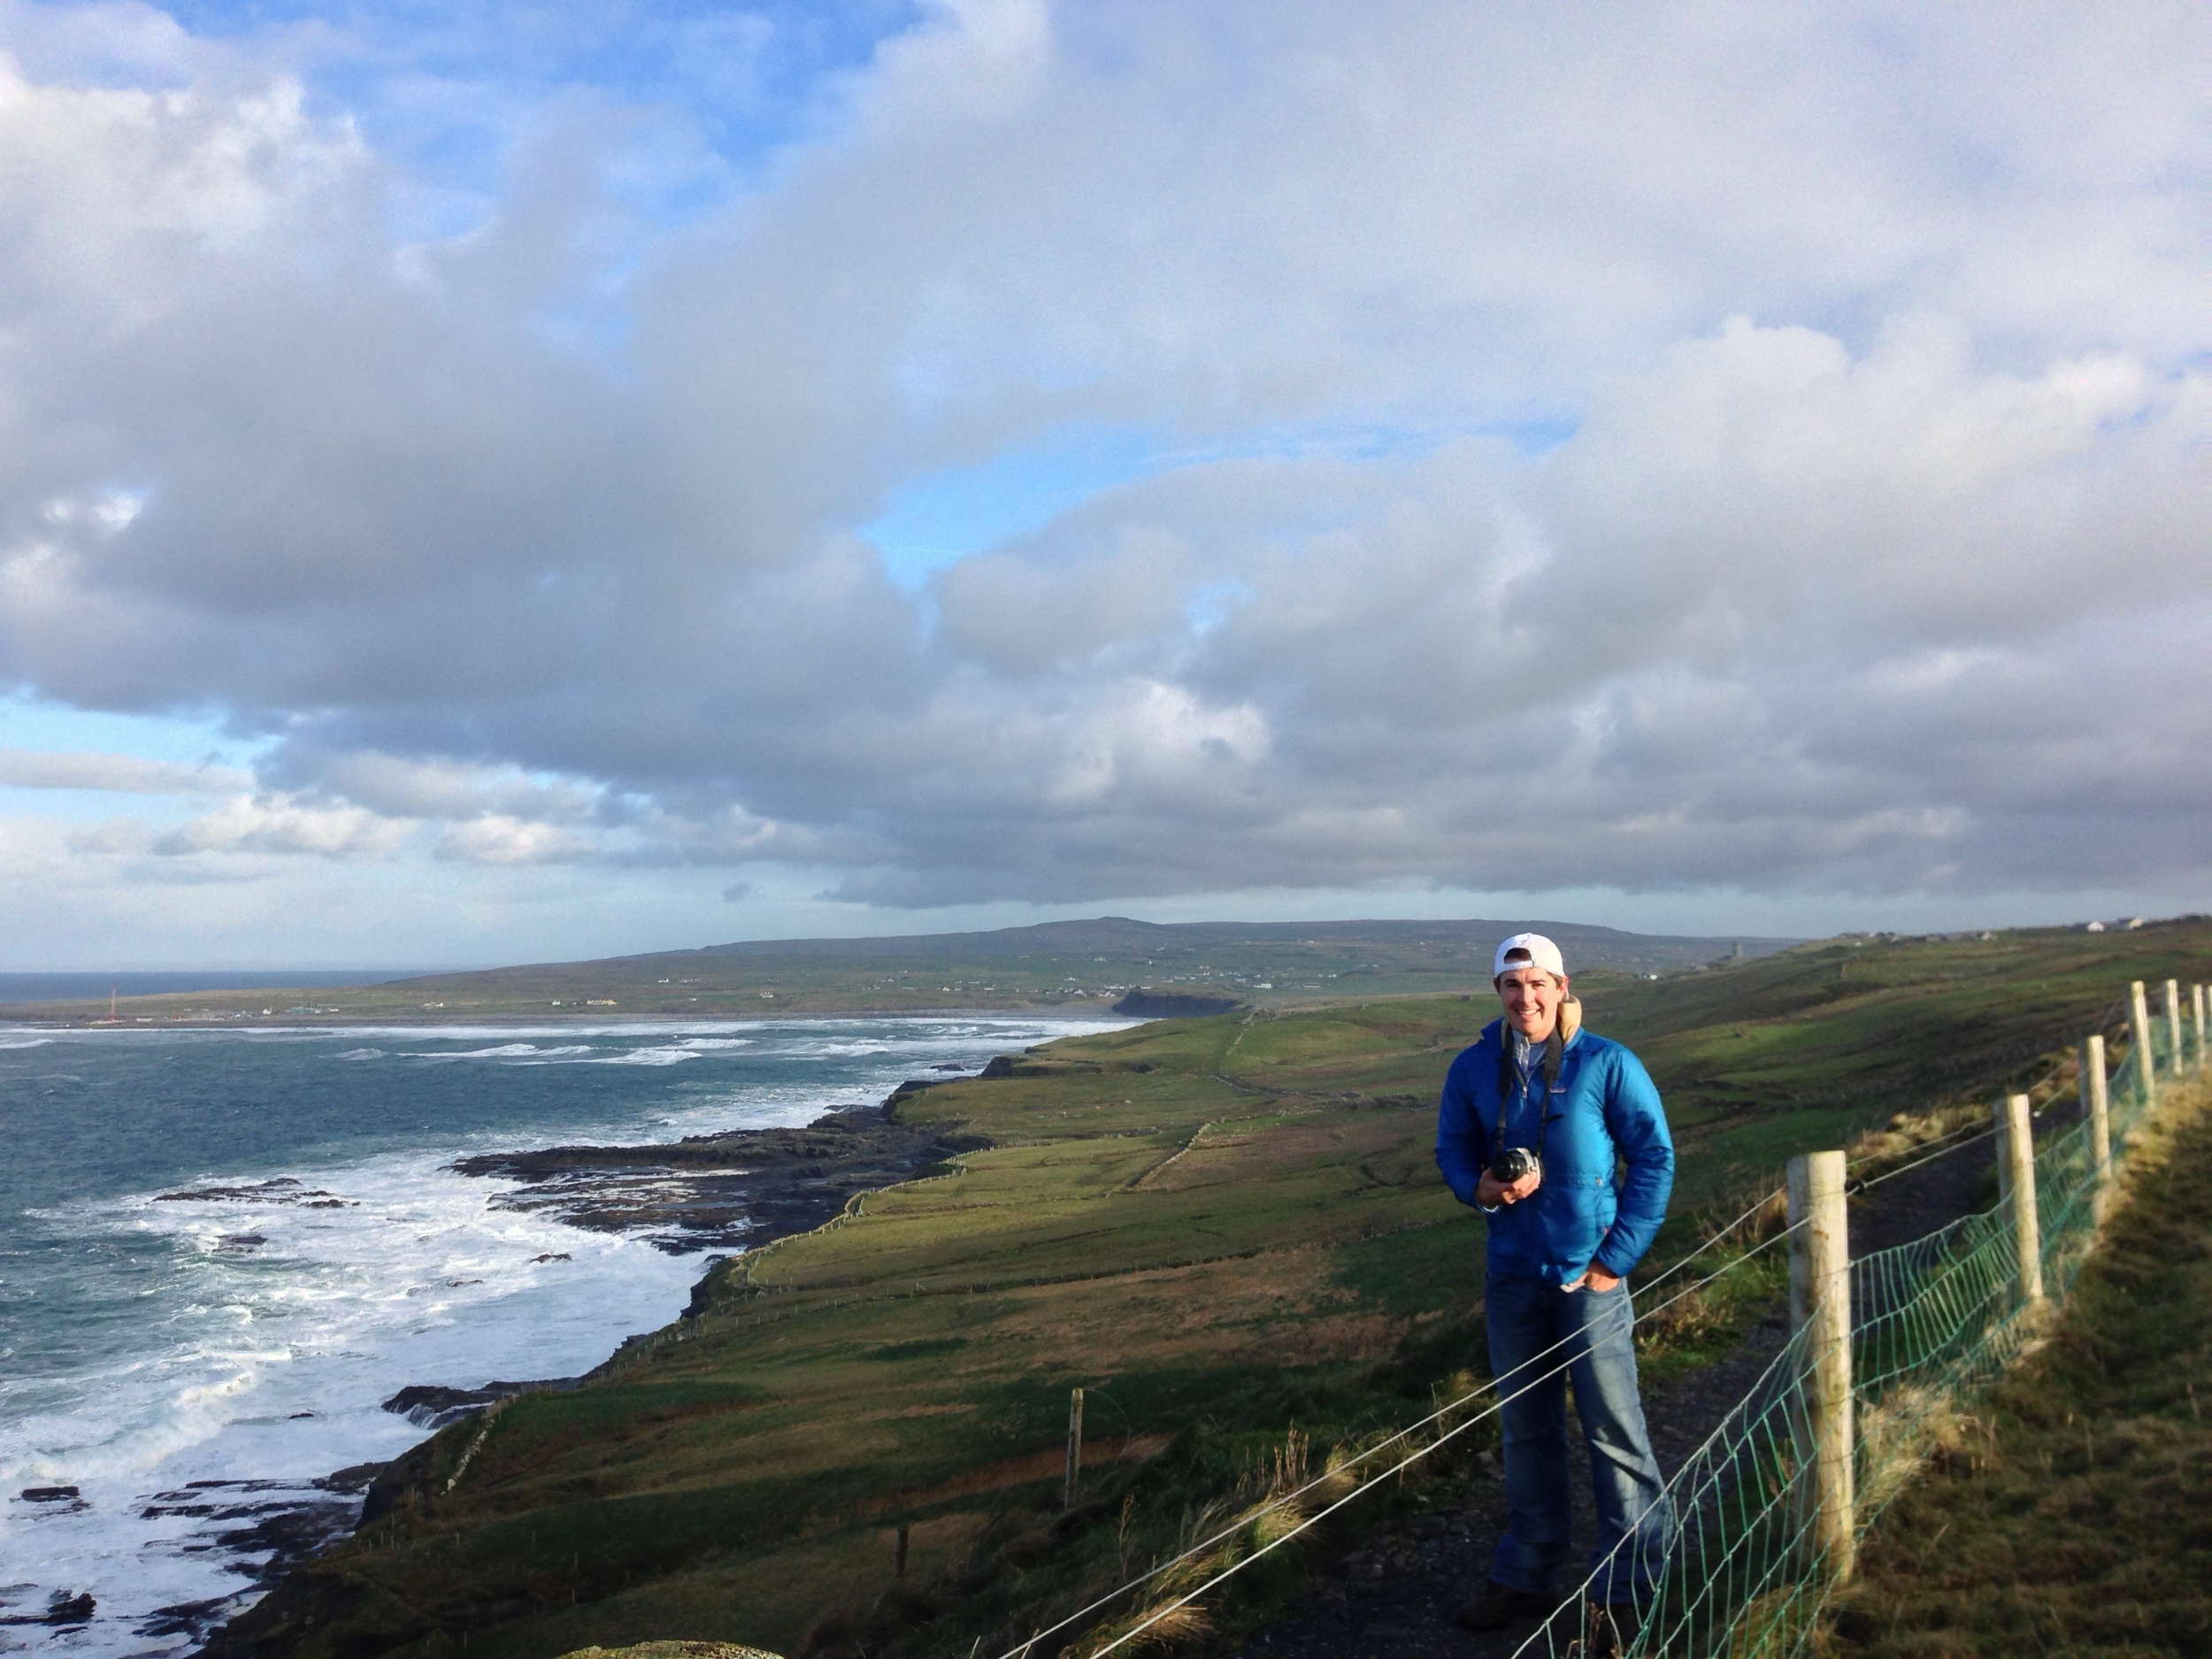 Battling wind, wire, and backwards waterfalls (waterflies?)while walking the Cliffs of Moher. Photo creditsto thewife, partner in 2014 and always.